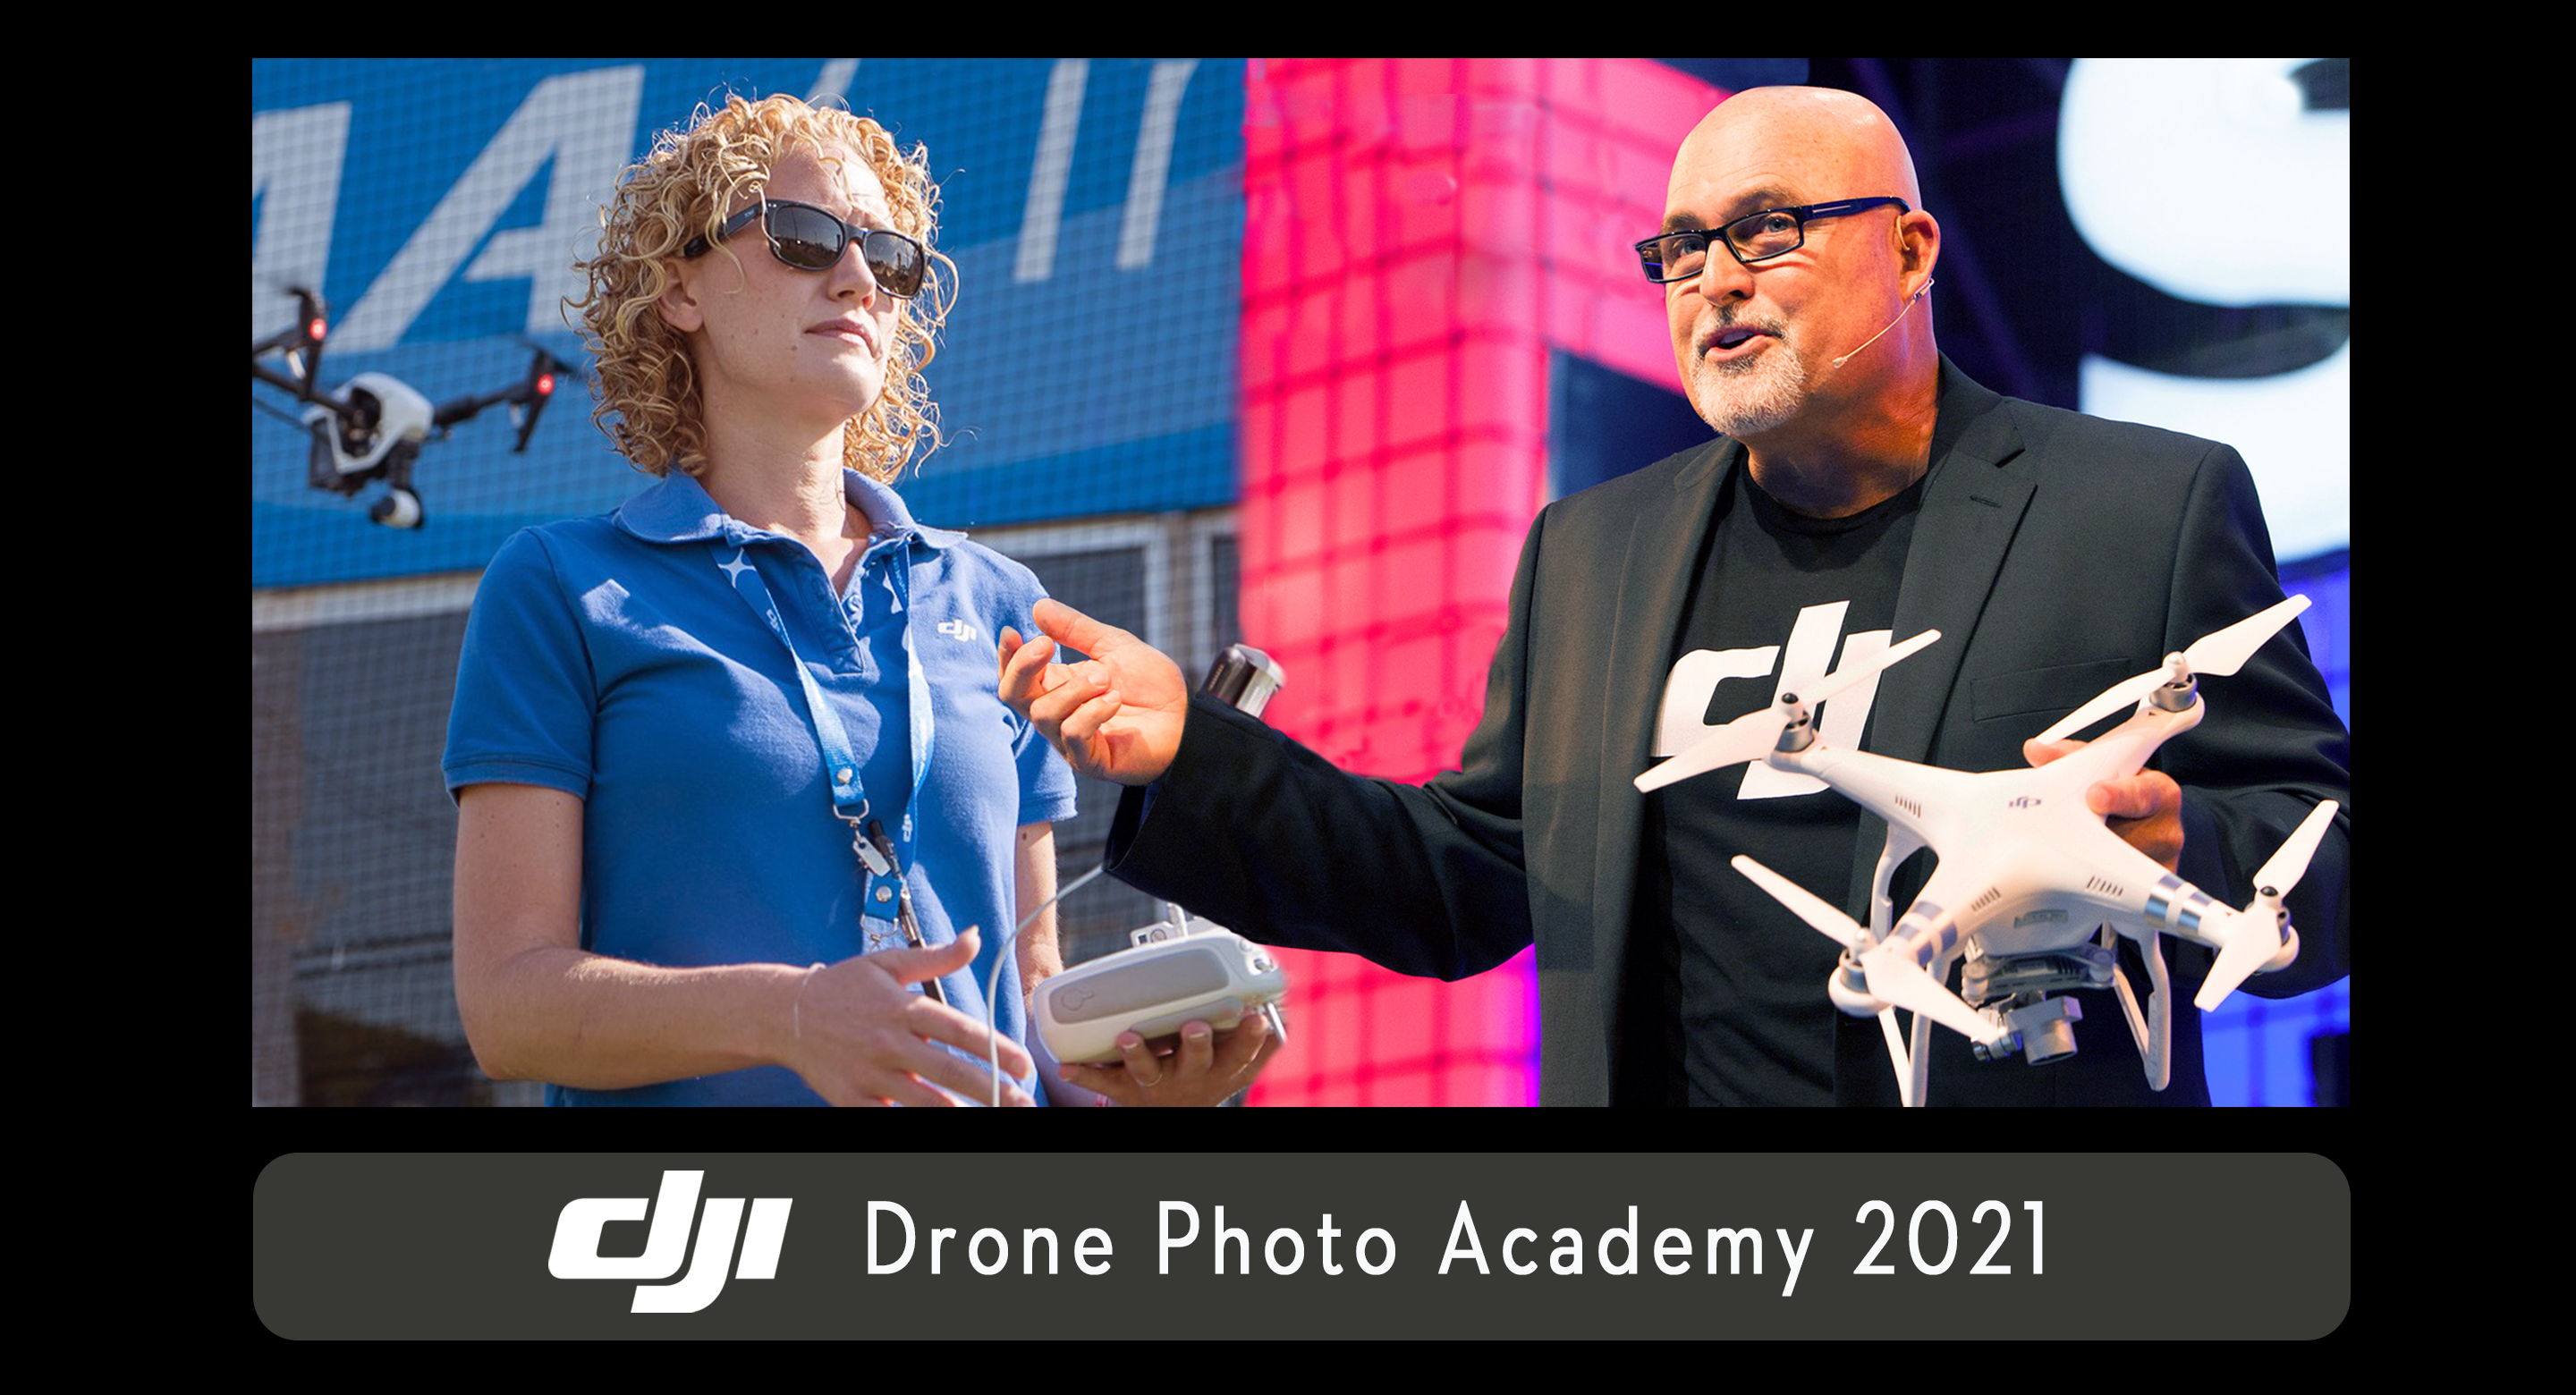 Randy and Stacy are your DJI Drone Photo Academy Instructors